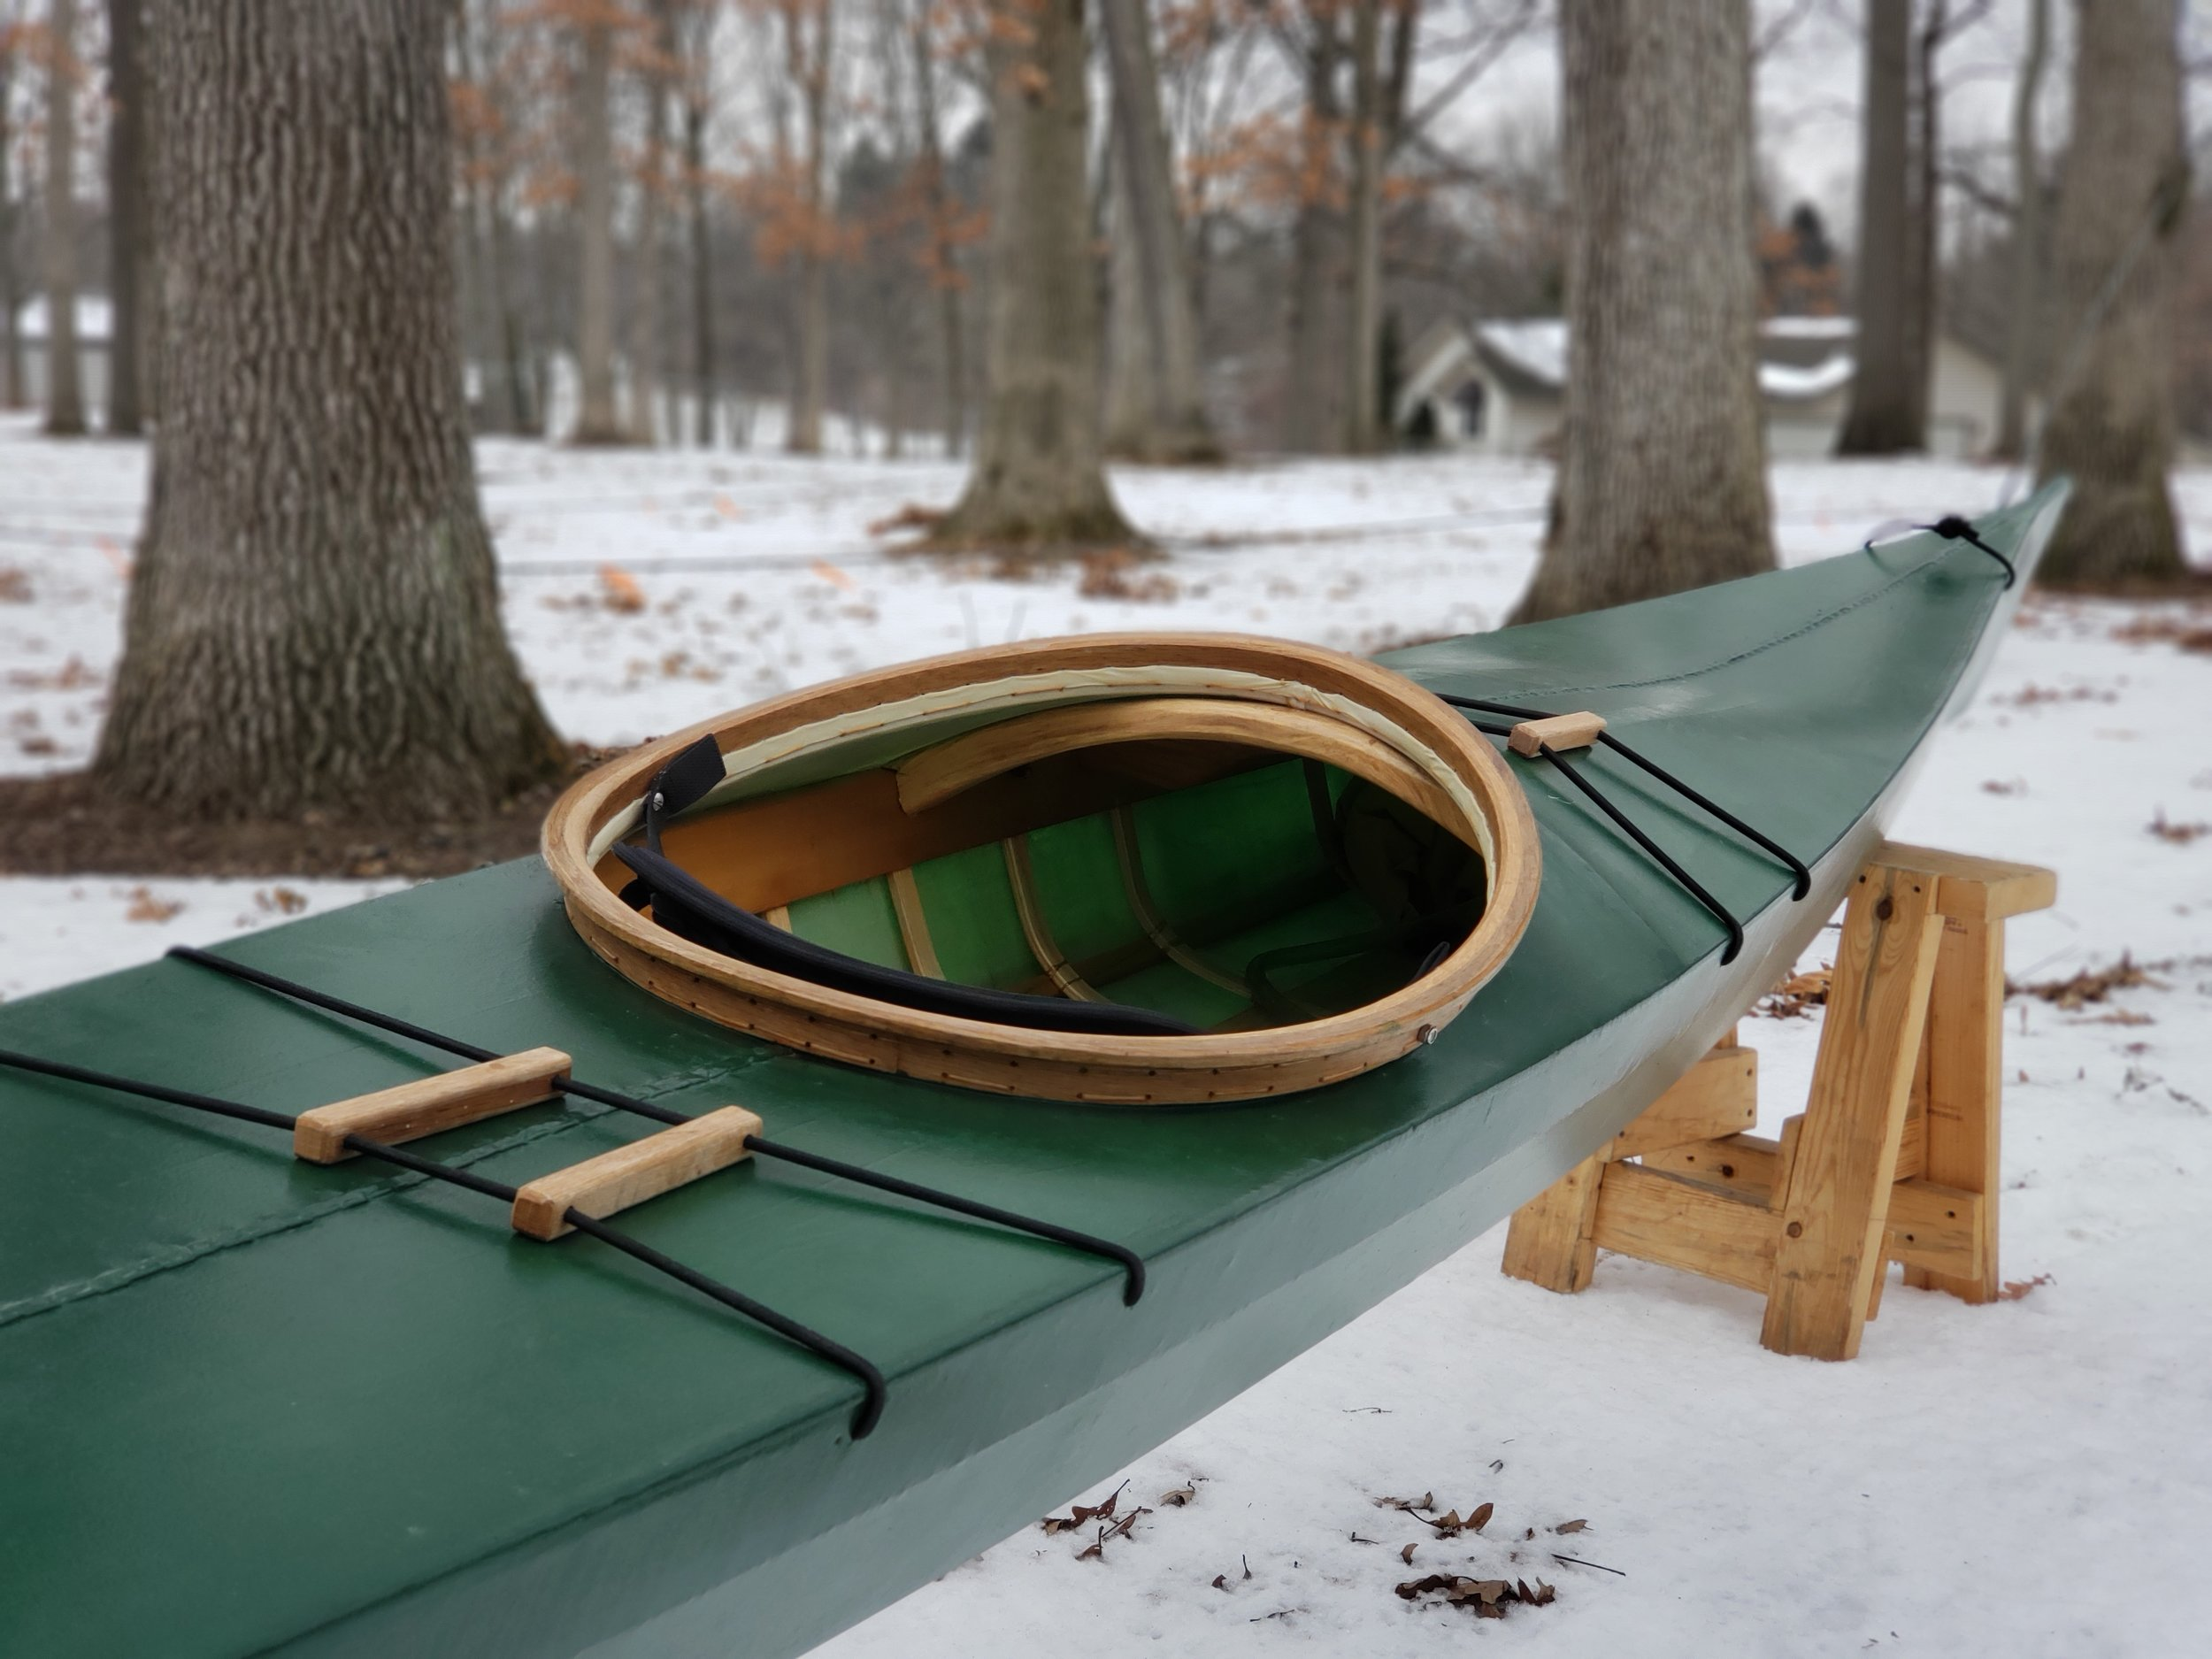 Build a Greenland Kayak - Woodworking Classes at the Sam Beauford Woodworking Institute